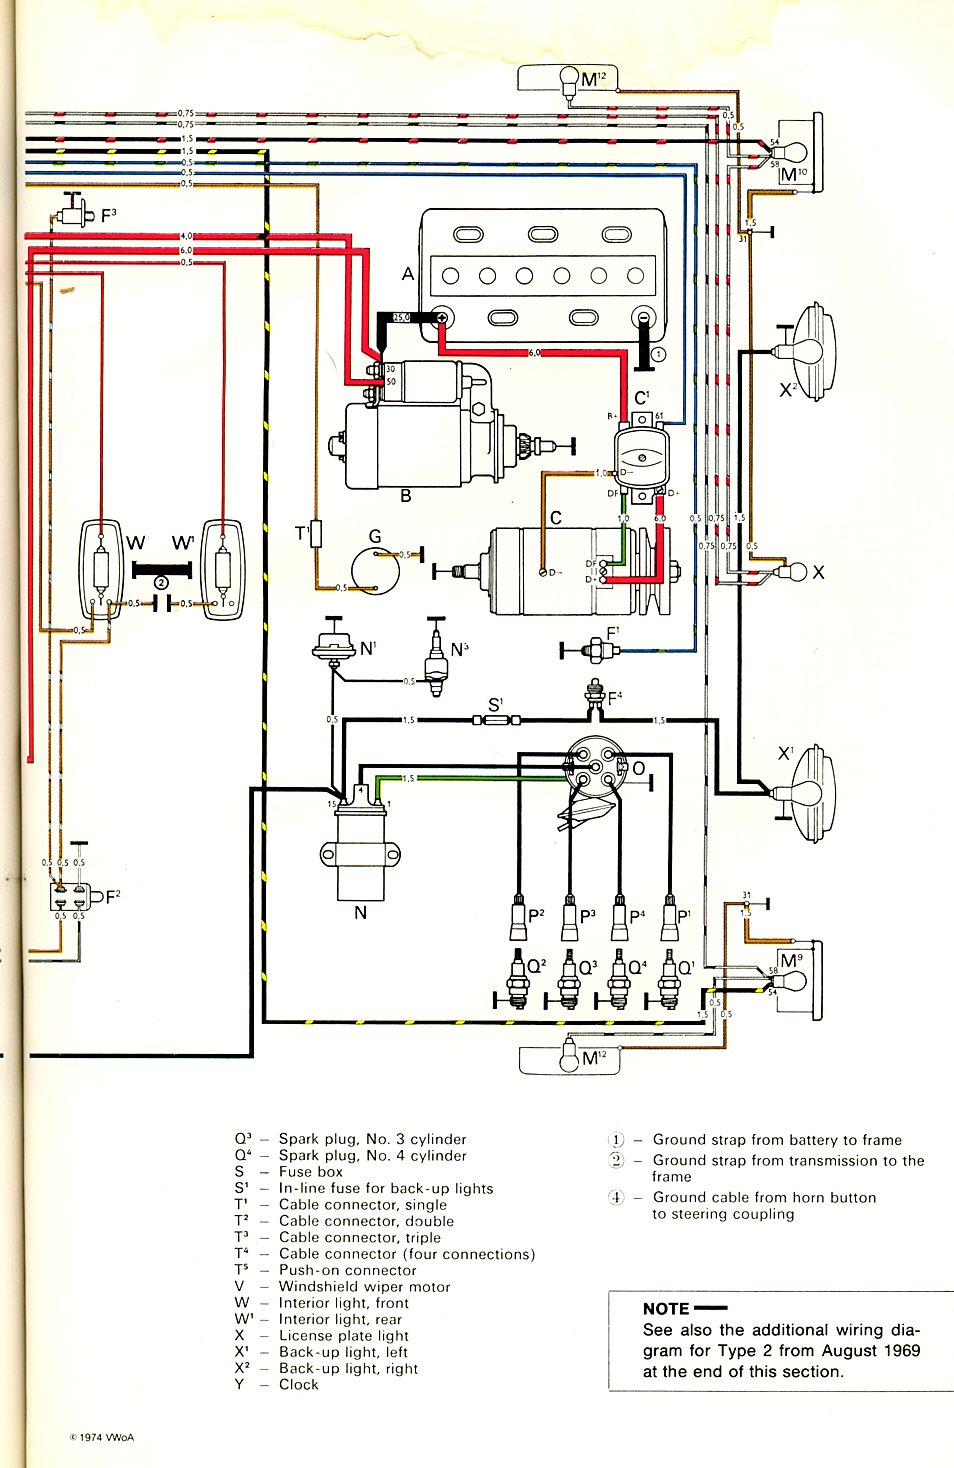 baybus_70b thesamba com type 2 wiring diagrams VW Alternator Hook Up at virtualis.co